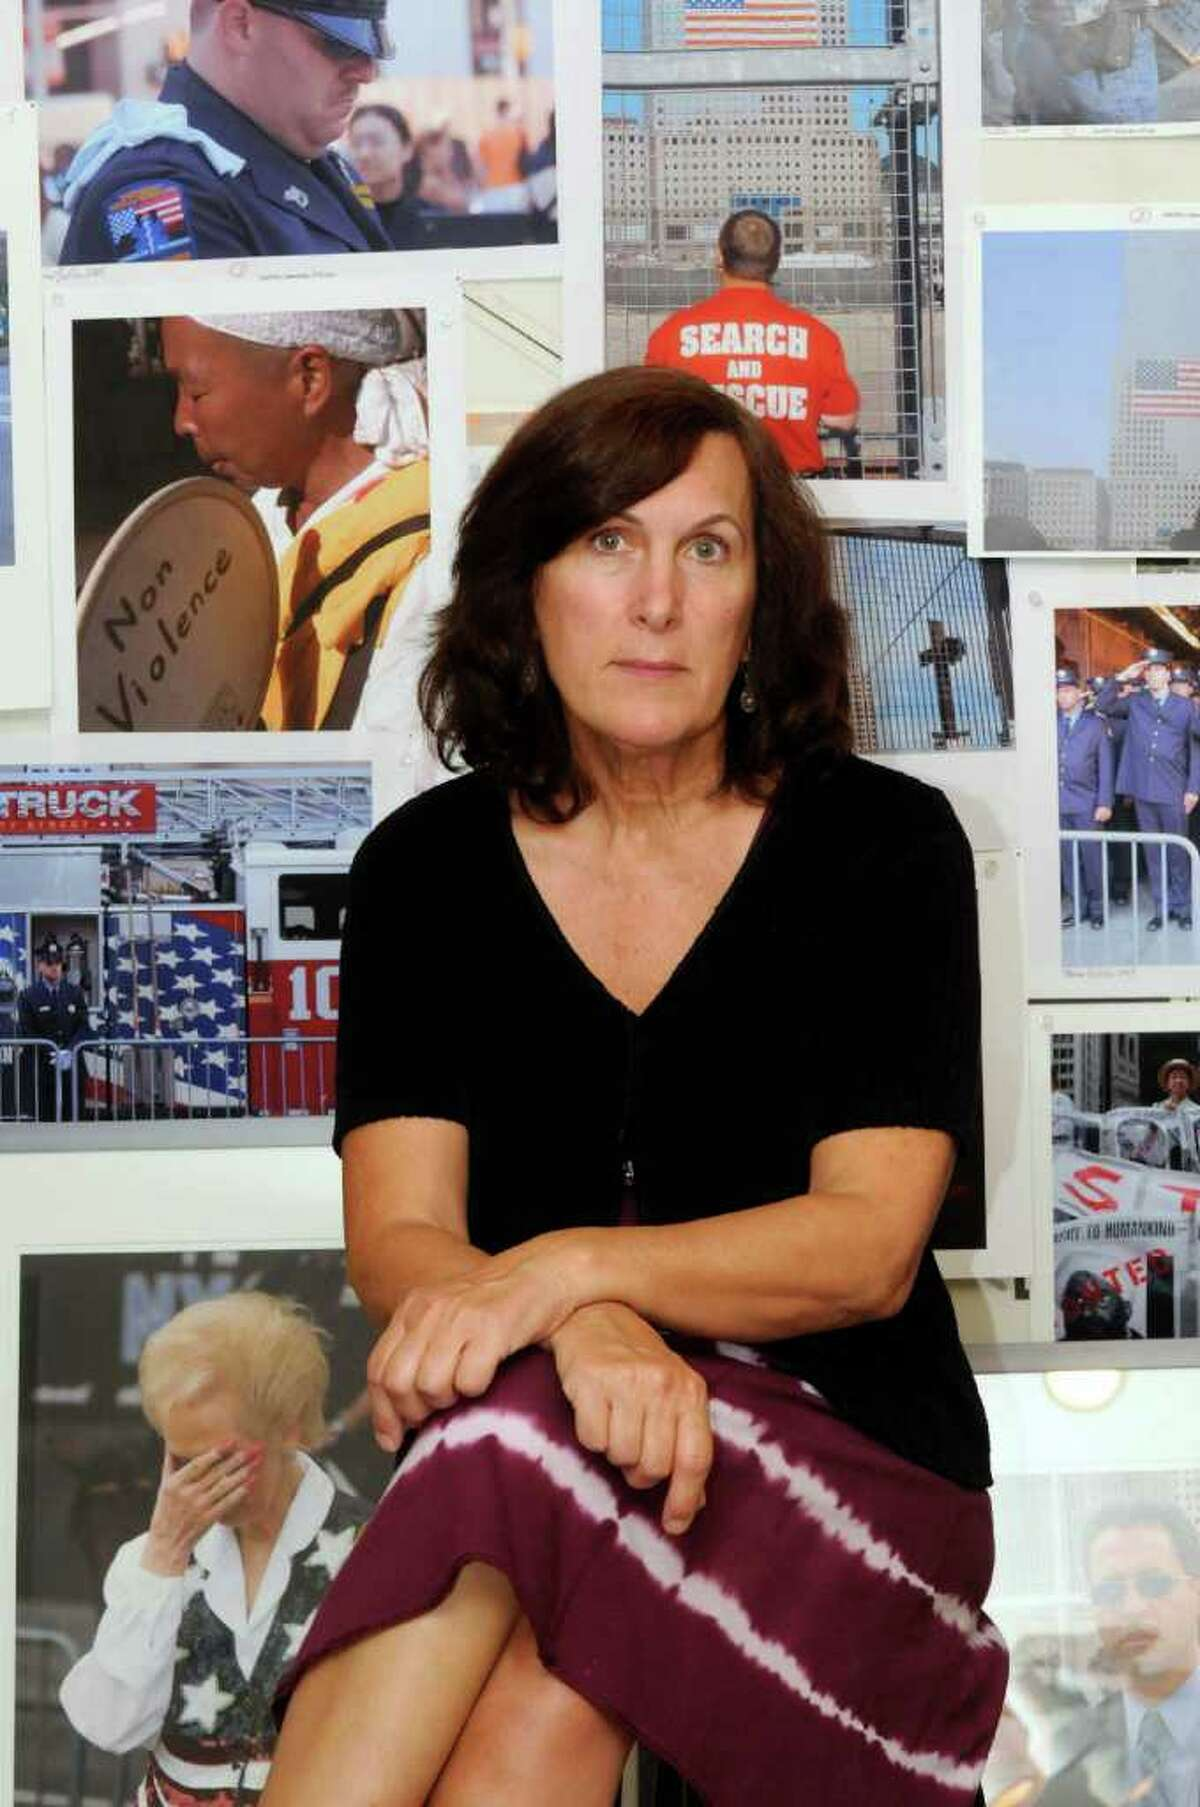 Local photographer Marie Triller, who has visited the 9/11 memorial at ground zero every anniversary and has just published a photography book,